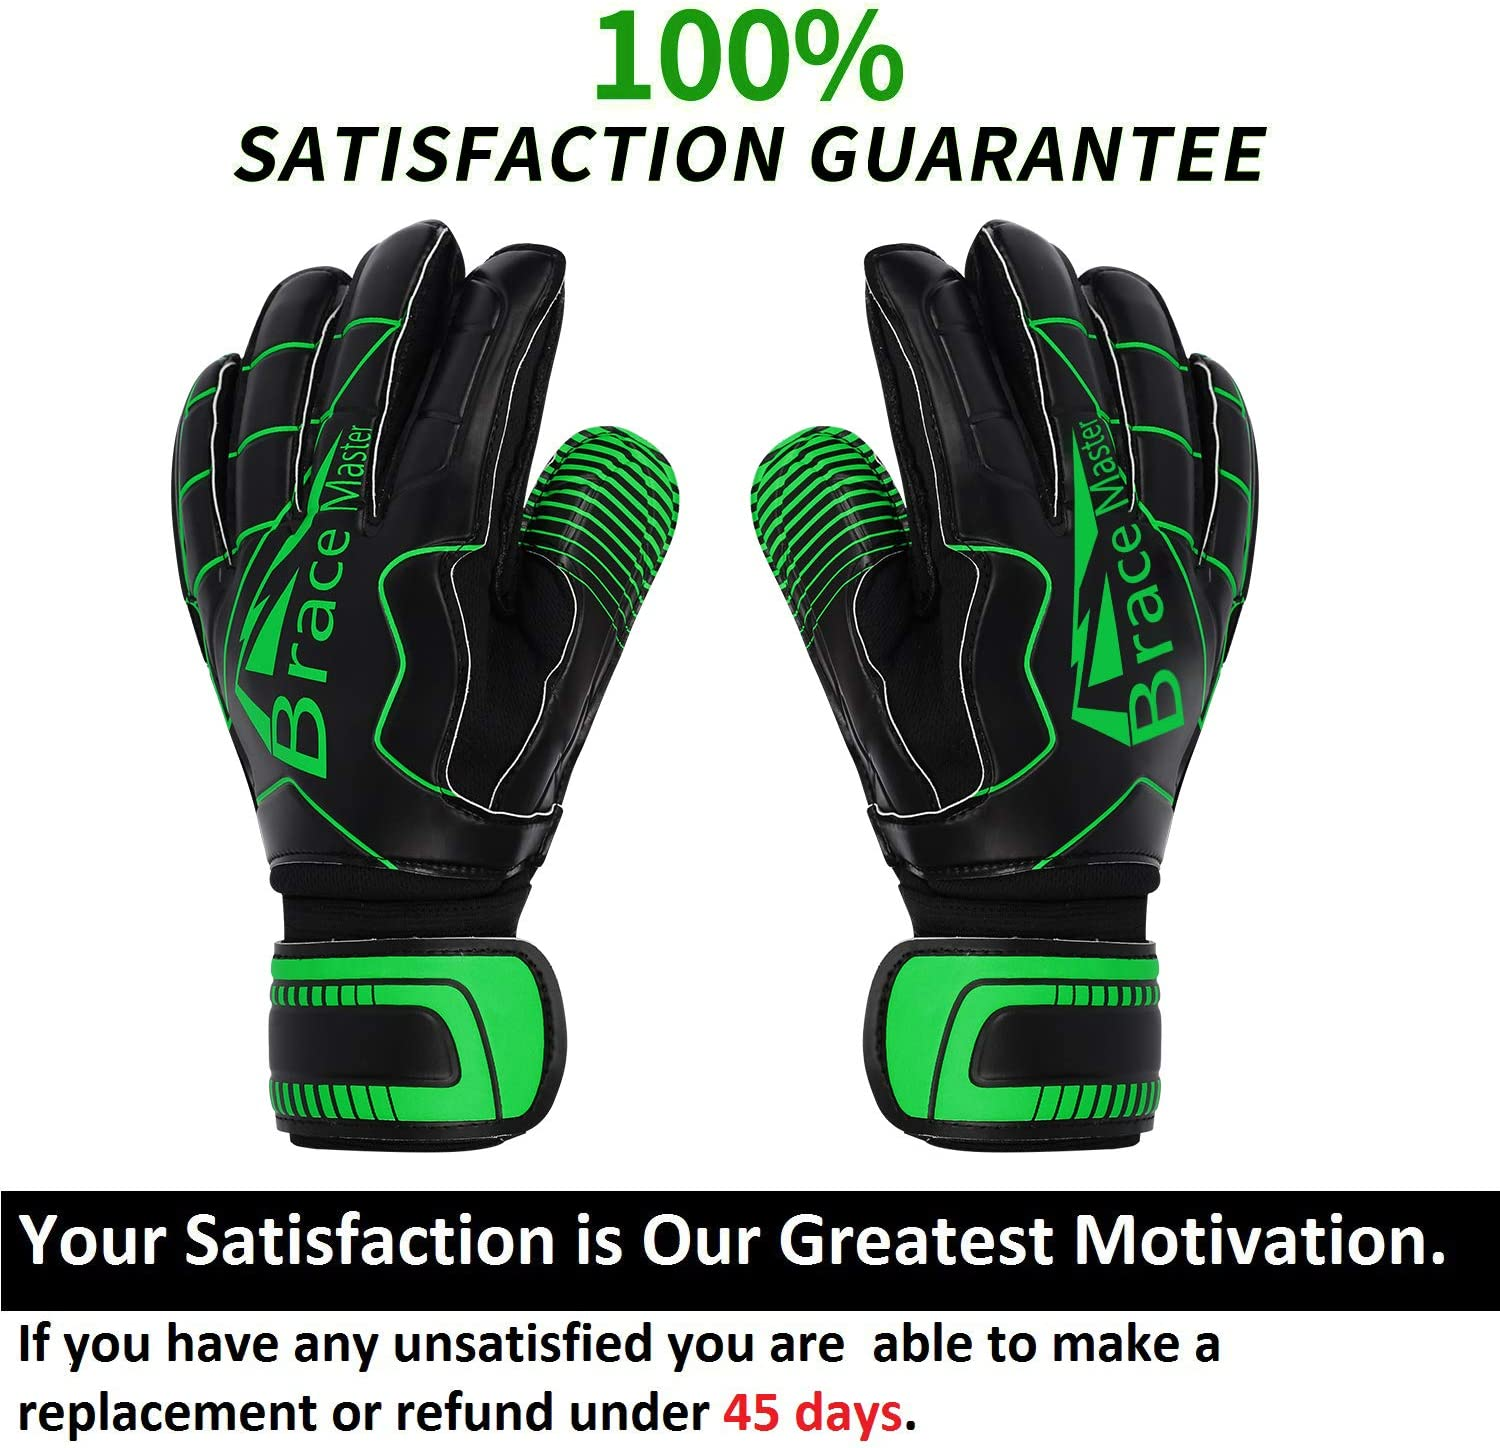 Brace Master Goalie Gloves (Sizes 7-10, 5 Styles), Double Wrist Design with Durable 3+3mm Strong Grip and Finger Spines Protection, Black Latex Goalkeeper Glove, Training and Match, Indoor and Outdoor : Sports & Outdoors